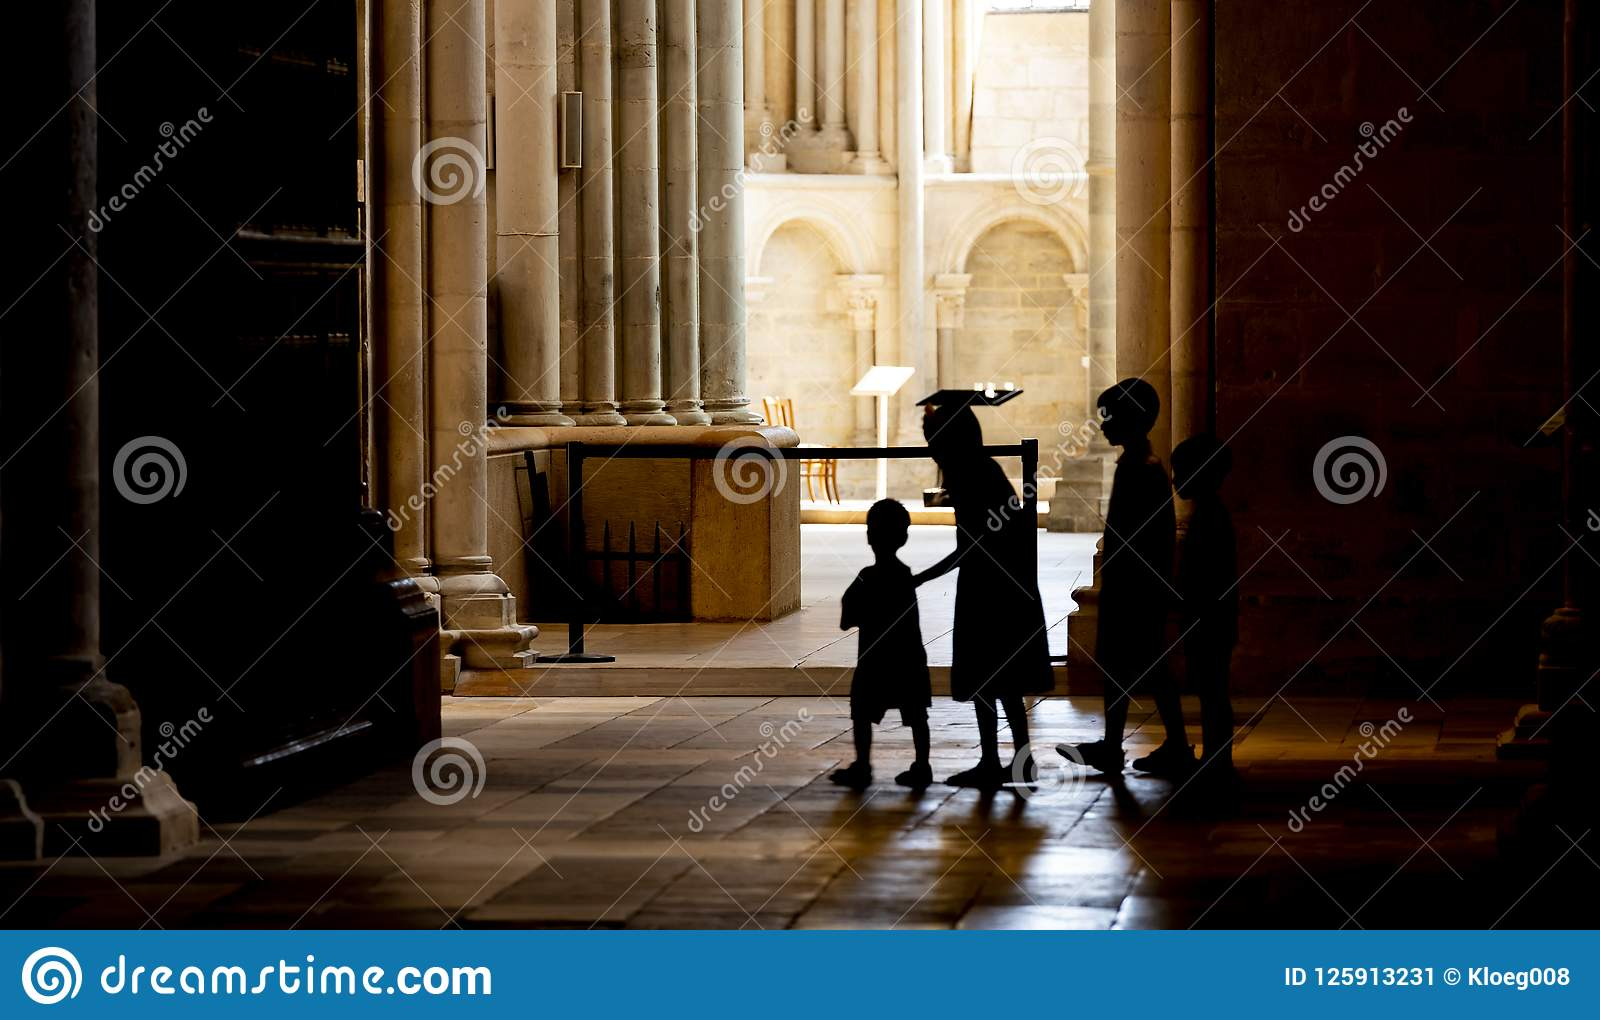 Children in the Church of Vezelay Service